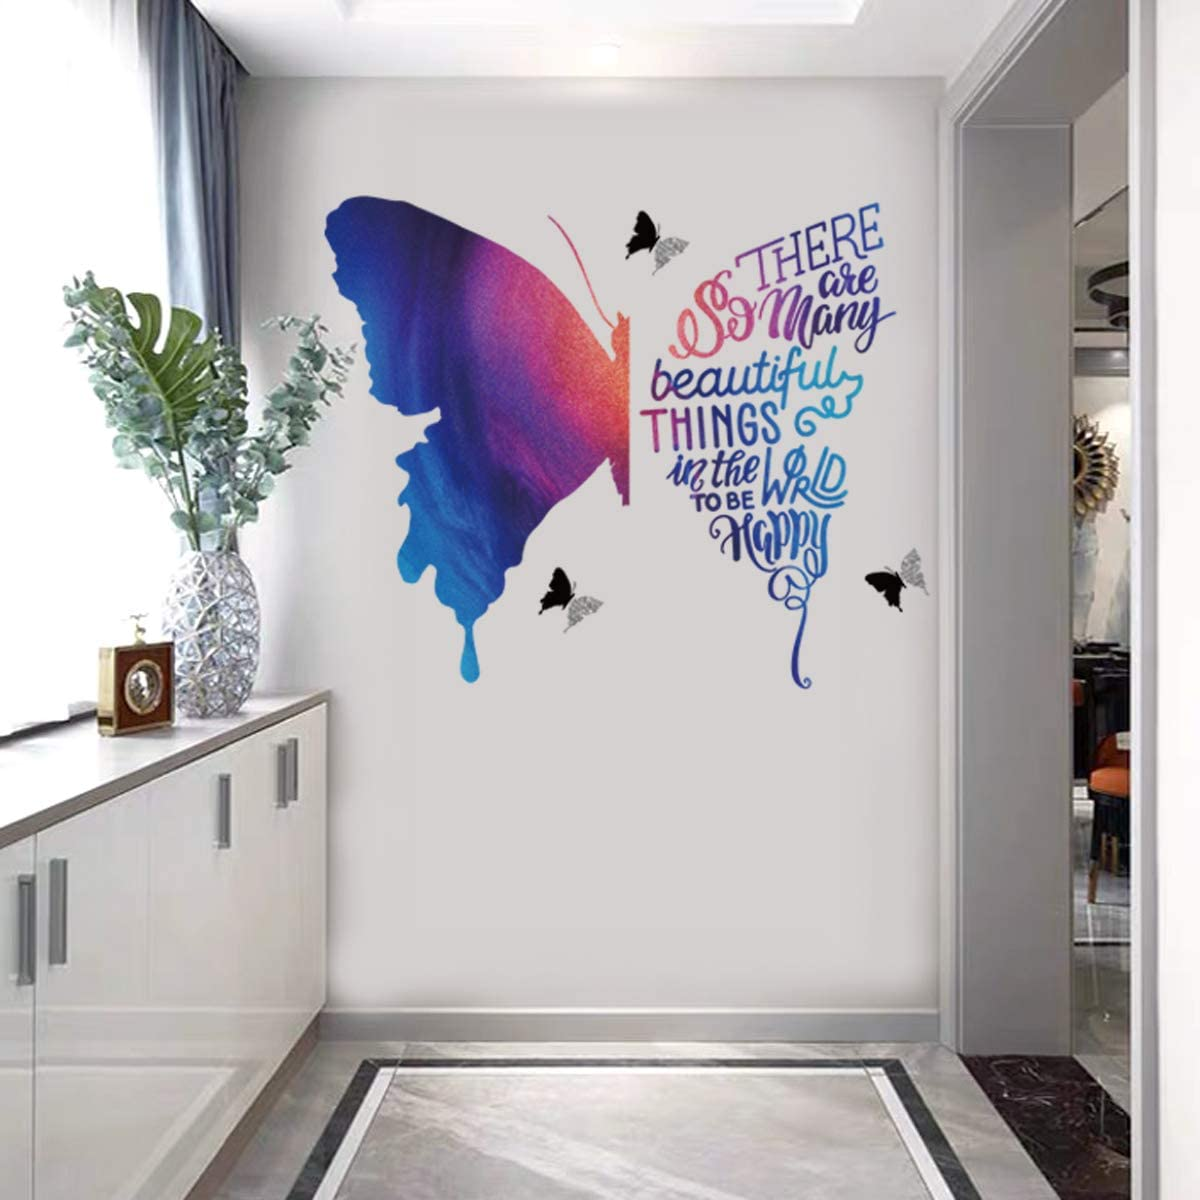 Multi-Color Big Butterfly Wall Stickers for Living Room Girls Bedroom Nursery Wall Decor Inspirational Quotes to Be Happy DIY Wall Decals.